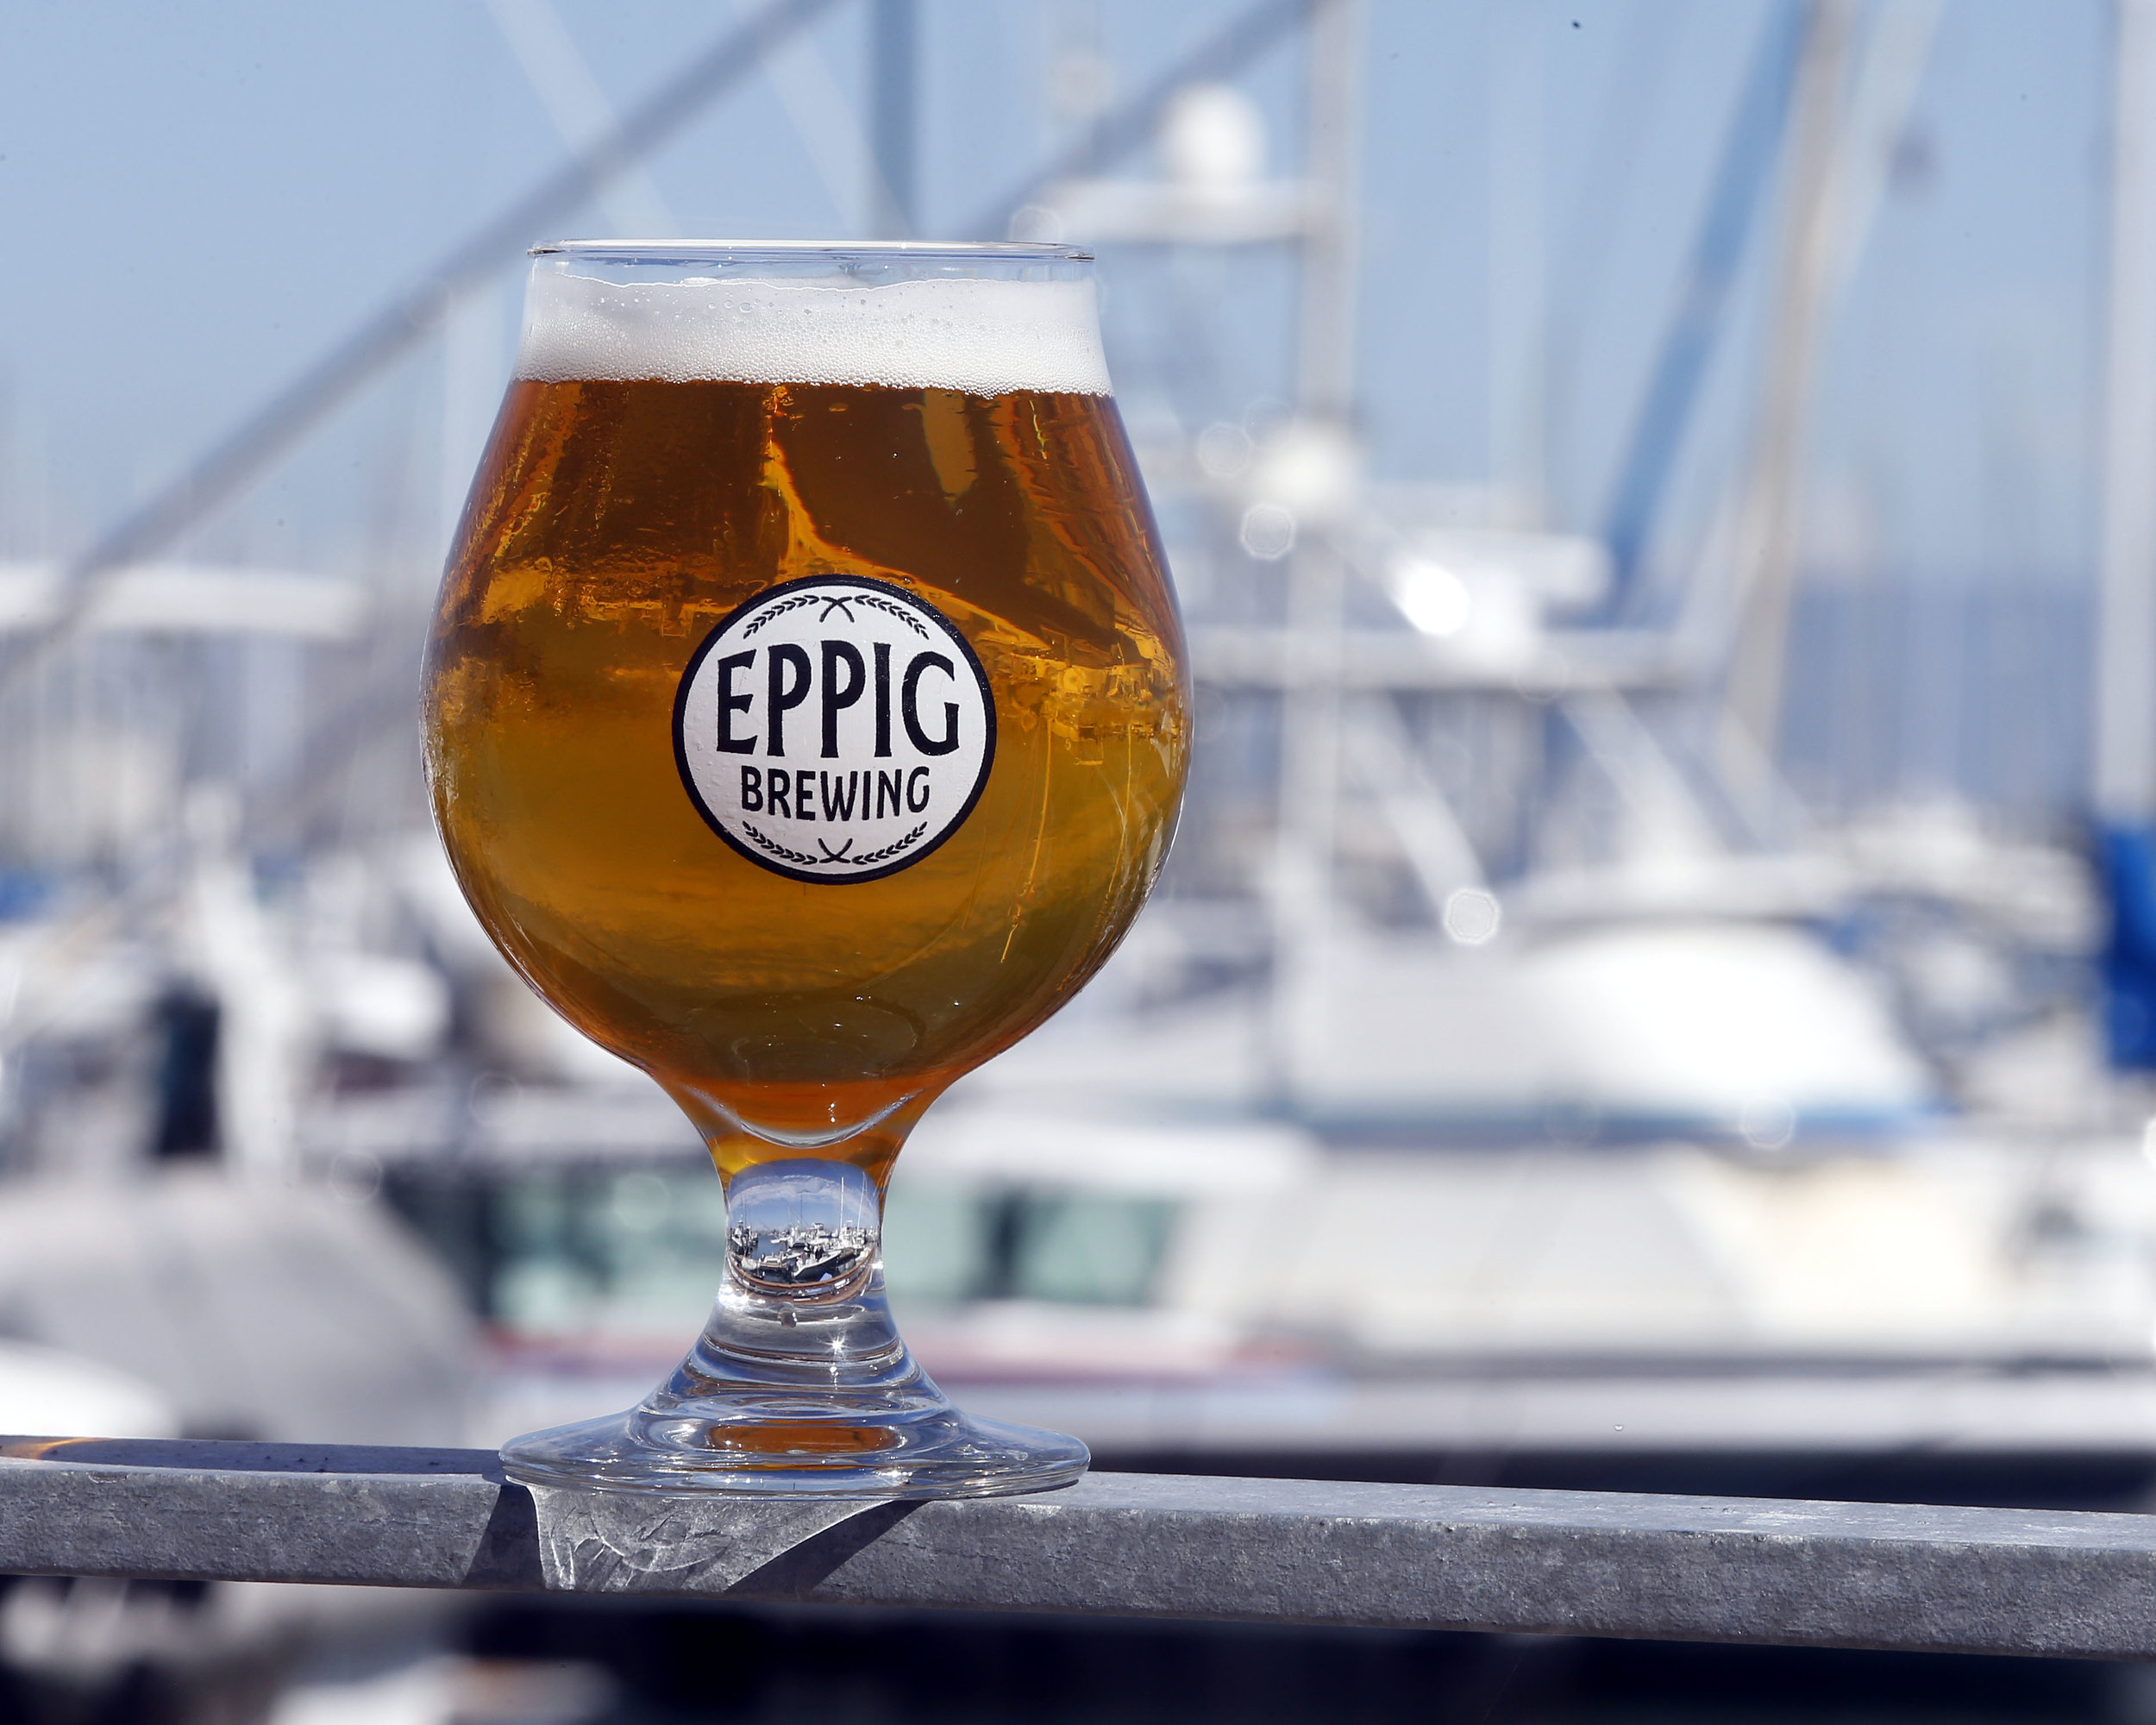 HARBOR CRUISE  IPA    ABV 6.3%  Ripe tropical fruit up front blended with green melon and exotic lime notes prevail. Laid back, easy drinking, like a leisurely cruise around the harbor.